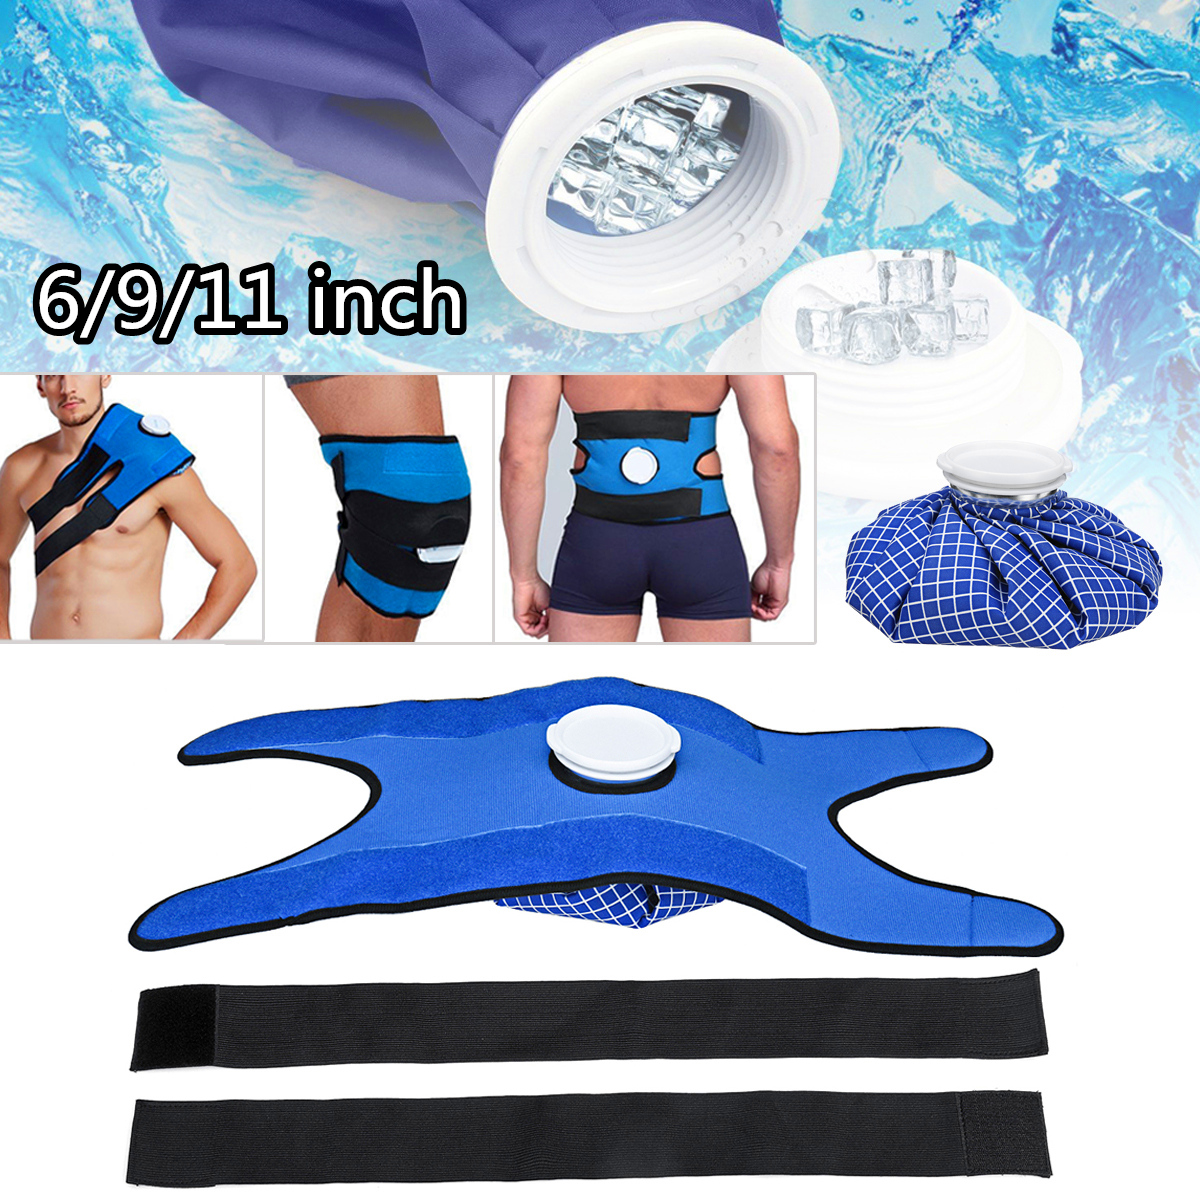 Pain Relief Hot Cold Therapy Reusable Ice Bag Pack Wrap for Knee Shoulder Back Shoulder Knee Waist Relaxing Compress Health Care reusable hot cold pack heat gel ice non toxic sports muscle back pain relief n